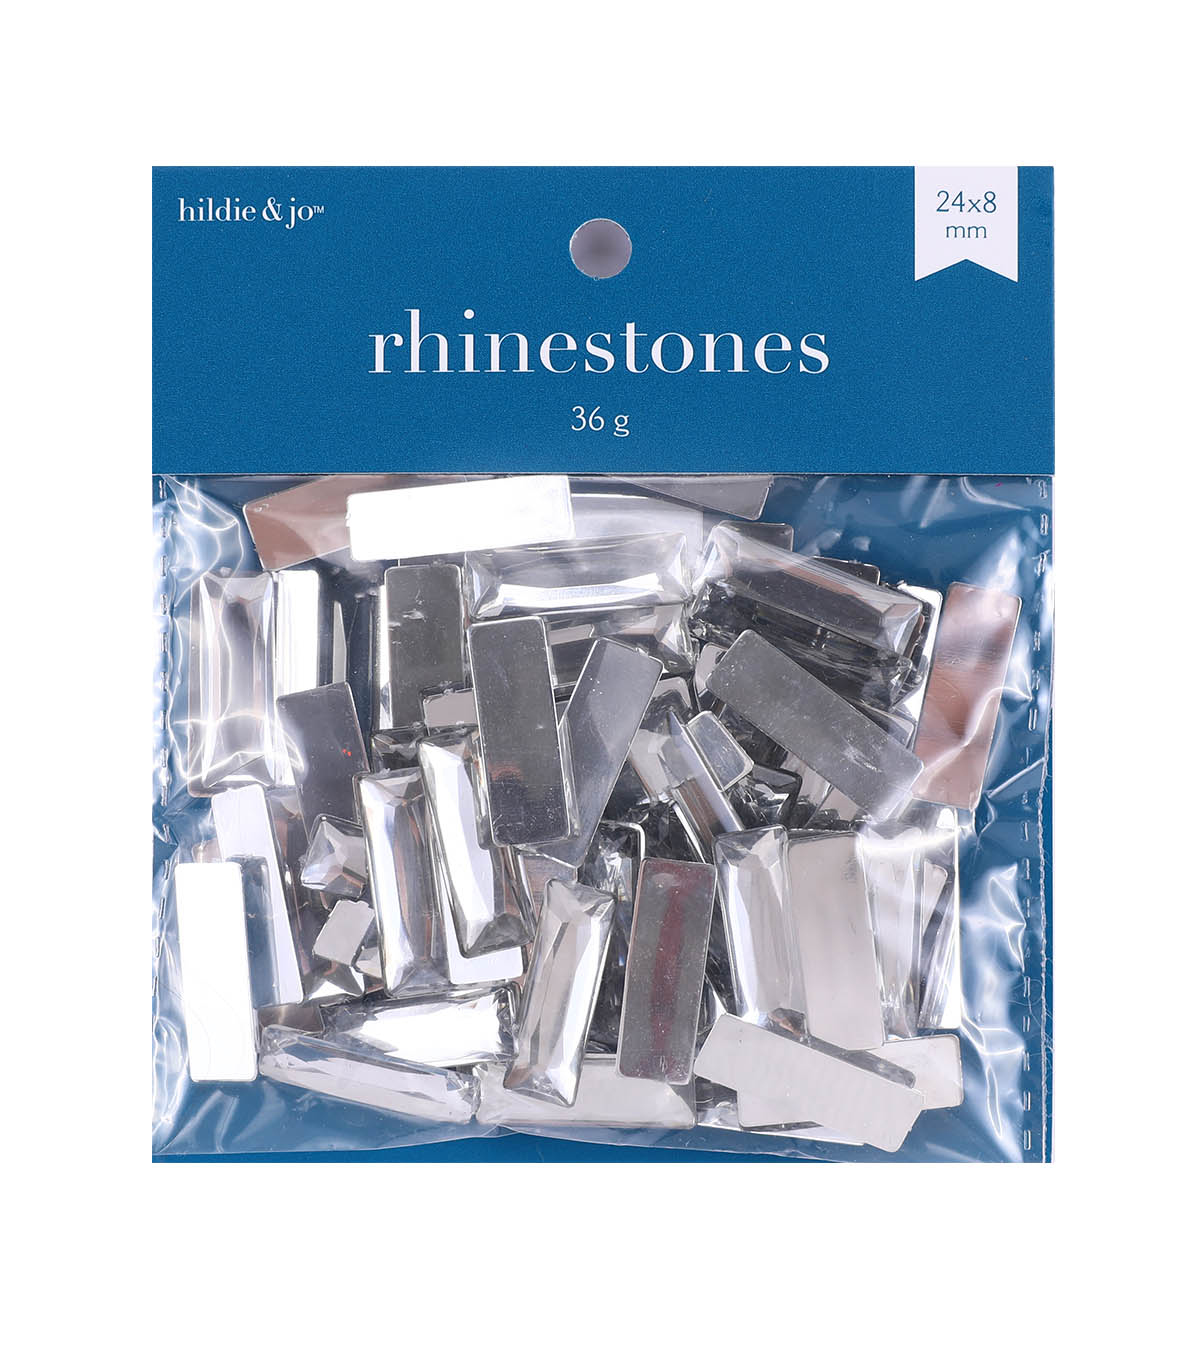 hildie & jo 75 pk Rectangle Plastic Crystal Flat Back Rhinestones